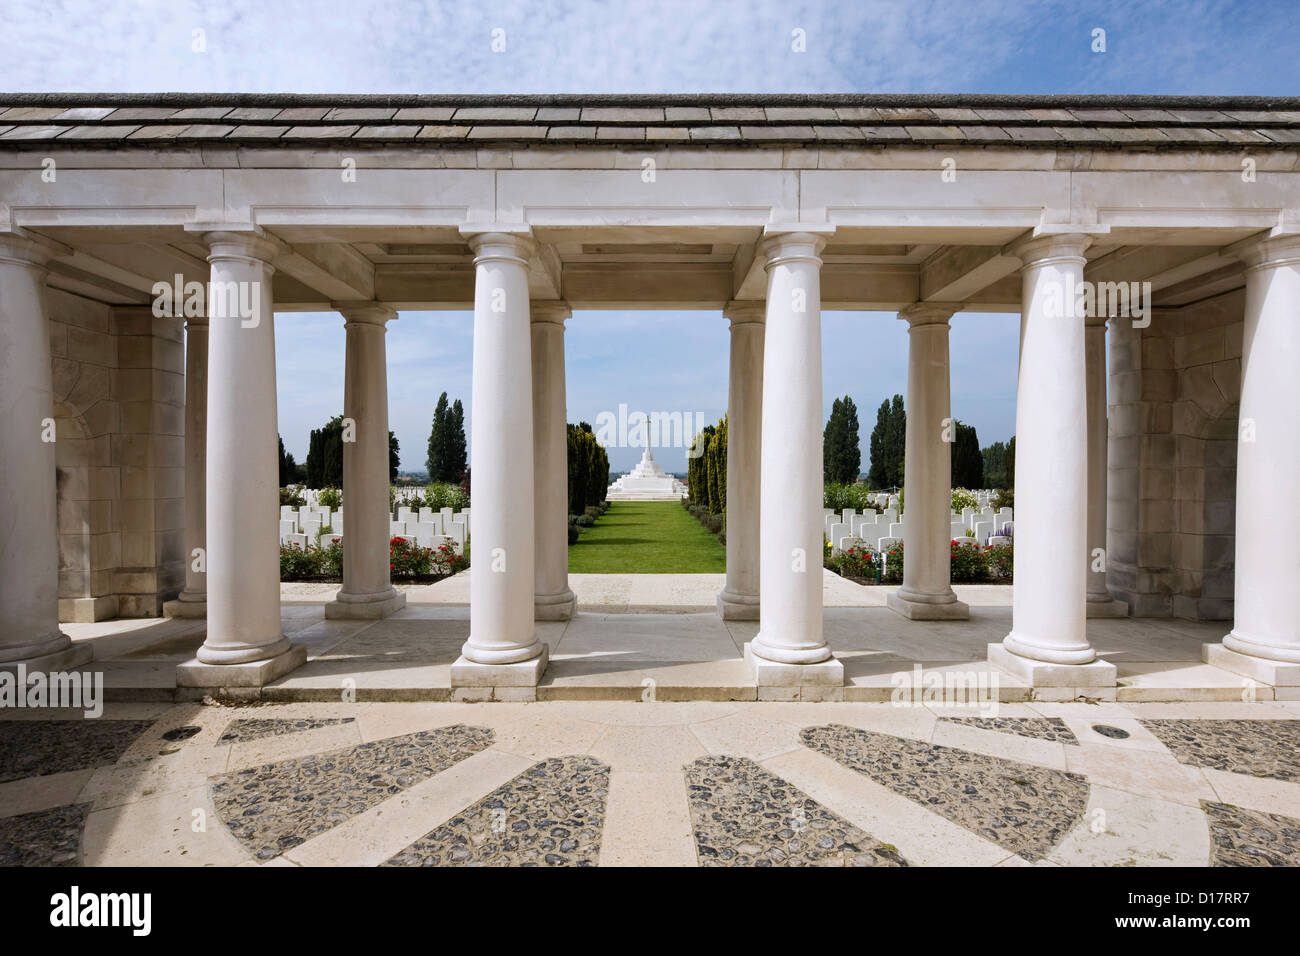 Commonwealth War Graves Commission Tyne Cot Cemetery for First World War One British soldiers at Passendale, Flanders, - Stock Image